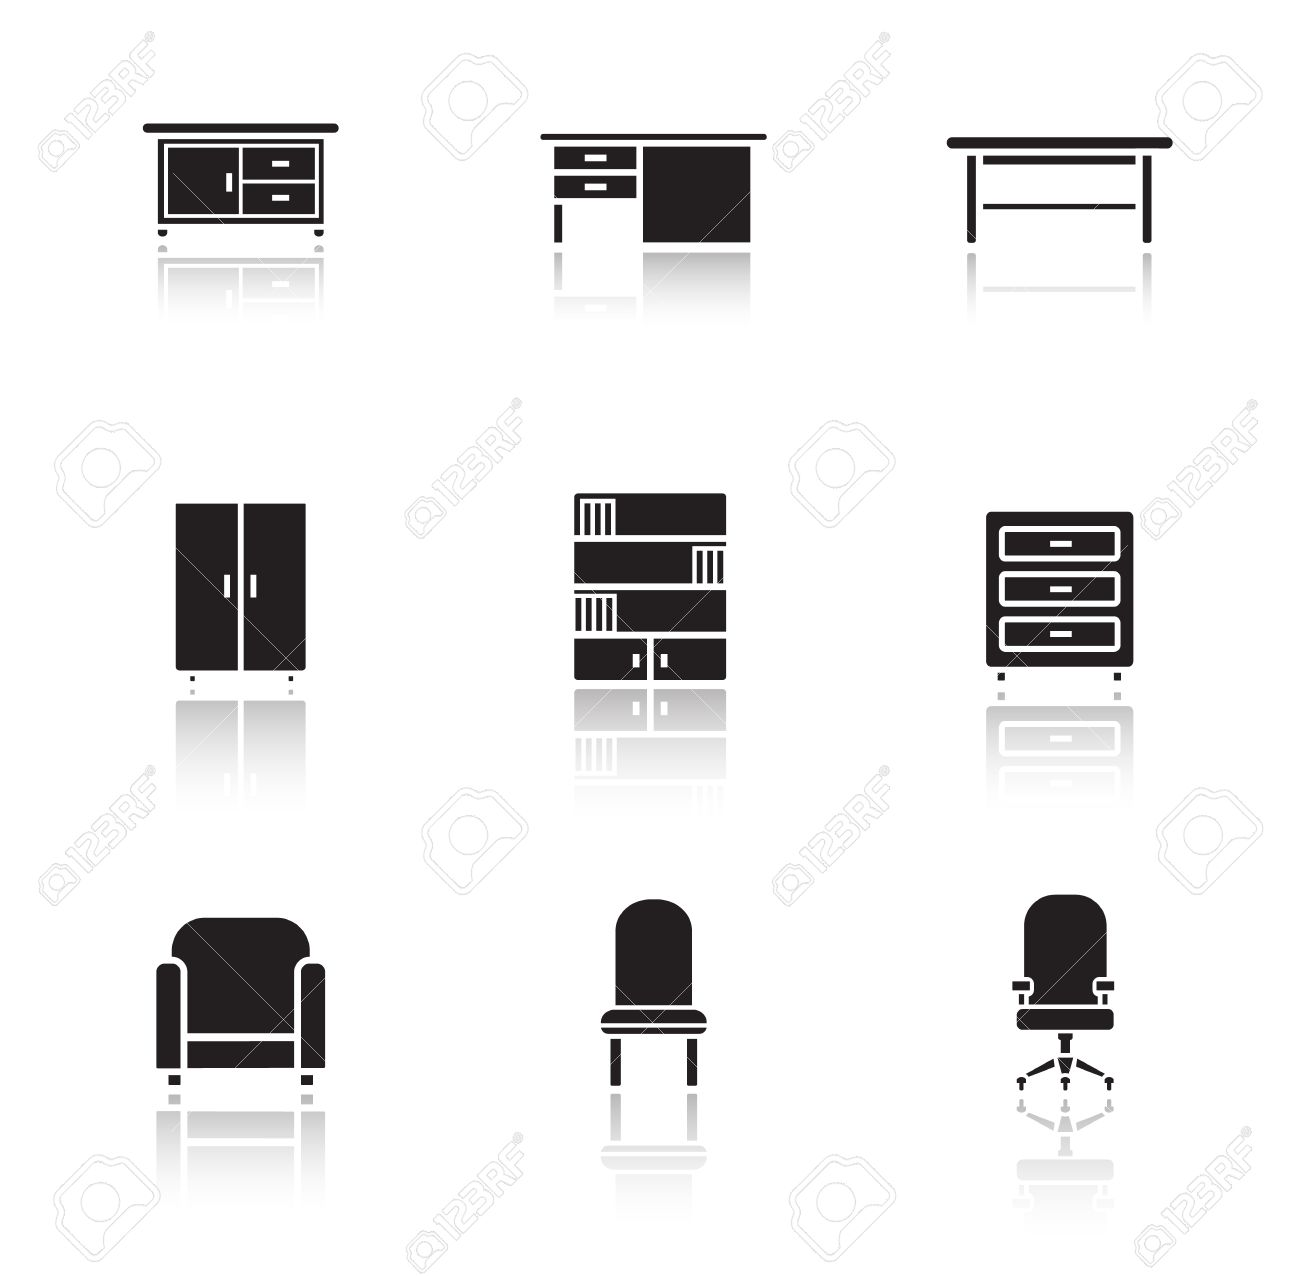 furniture black icons set home interior decoration silhouette